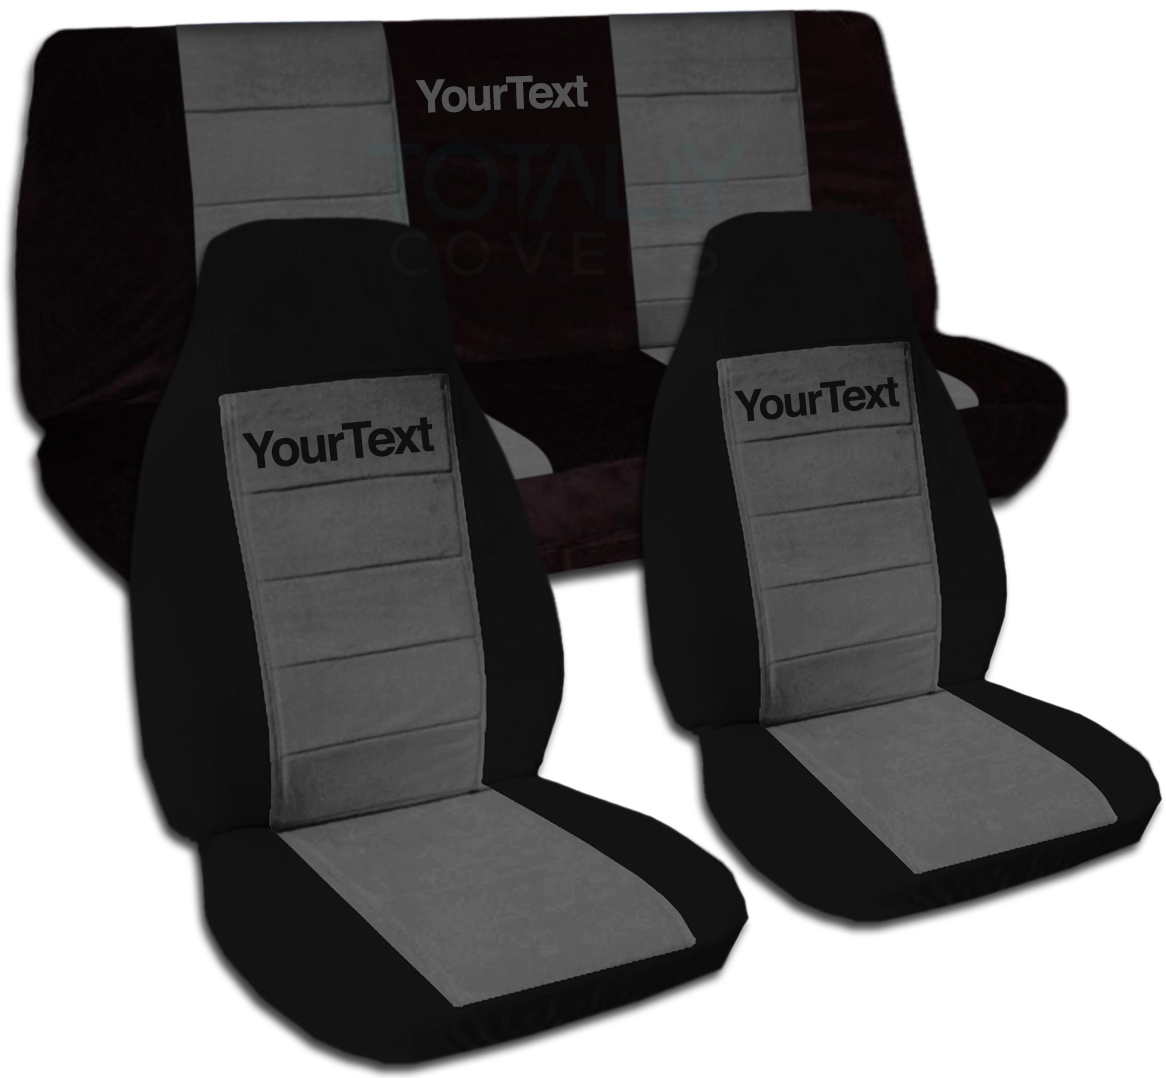 Jeep Seat Covers >> Details About Jeep Wrangler Yj Tj Jk Jl 1987 2019 Two Tone Seat Covers W Your Text Front Rear